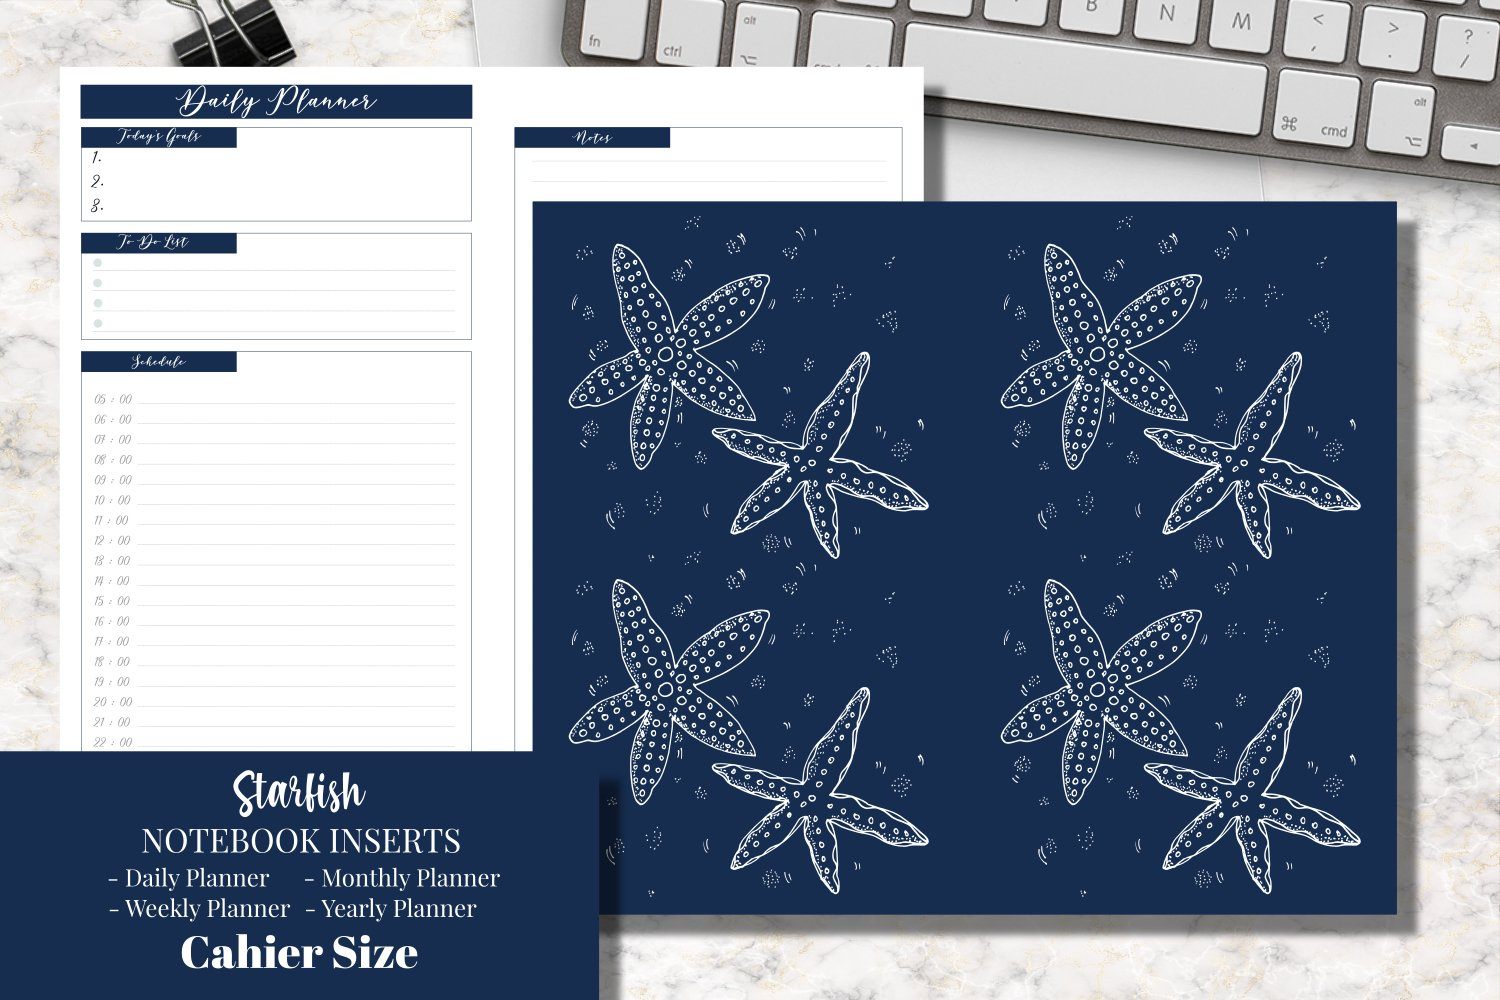 Starfish Cahier Size Notebook Inserts Planner example image 1